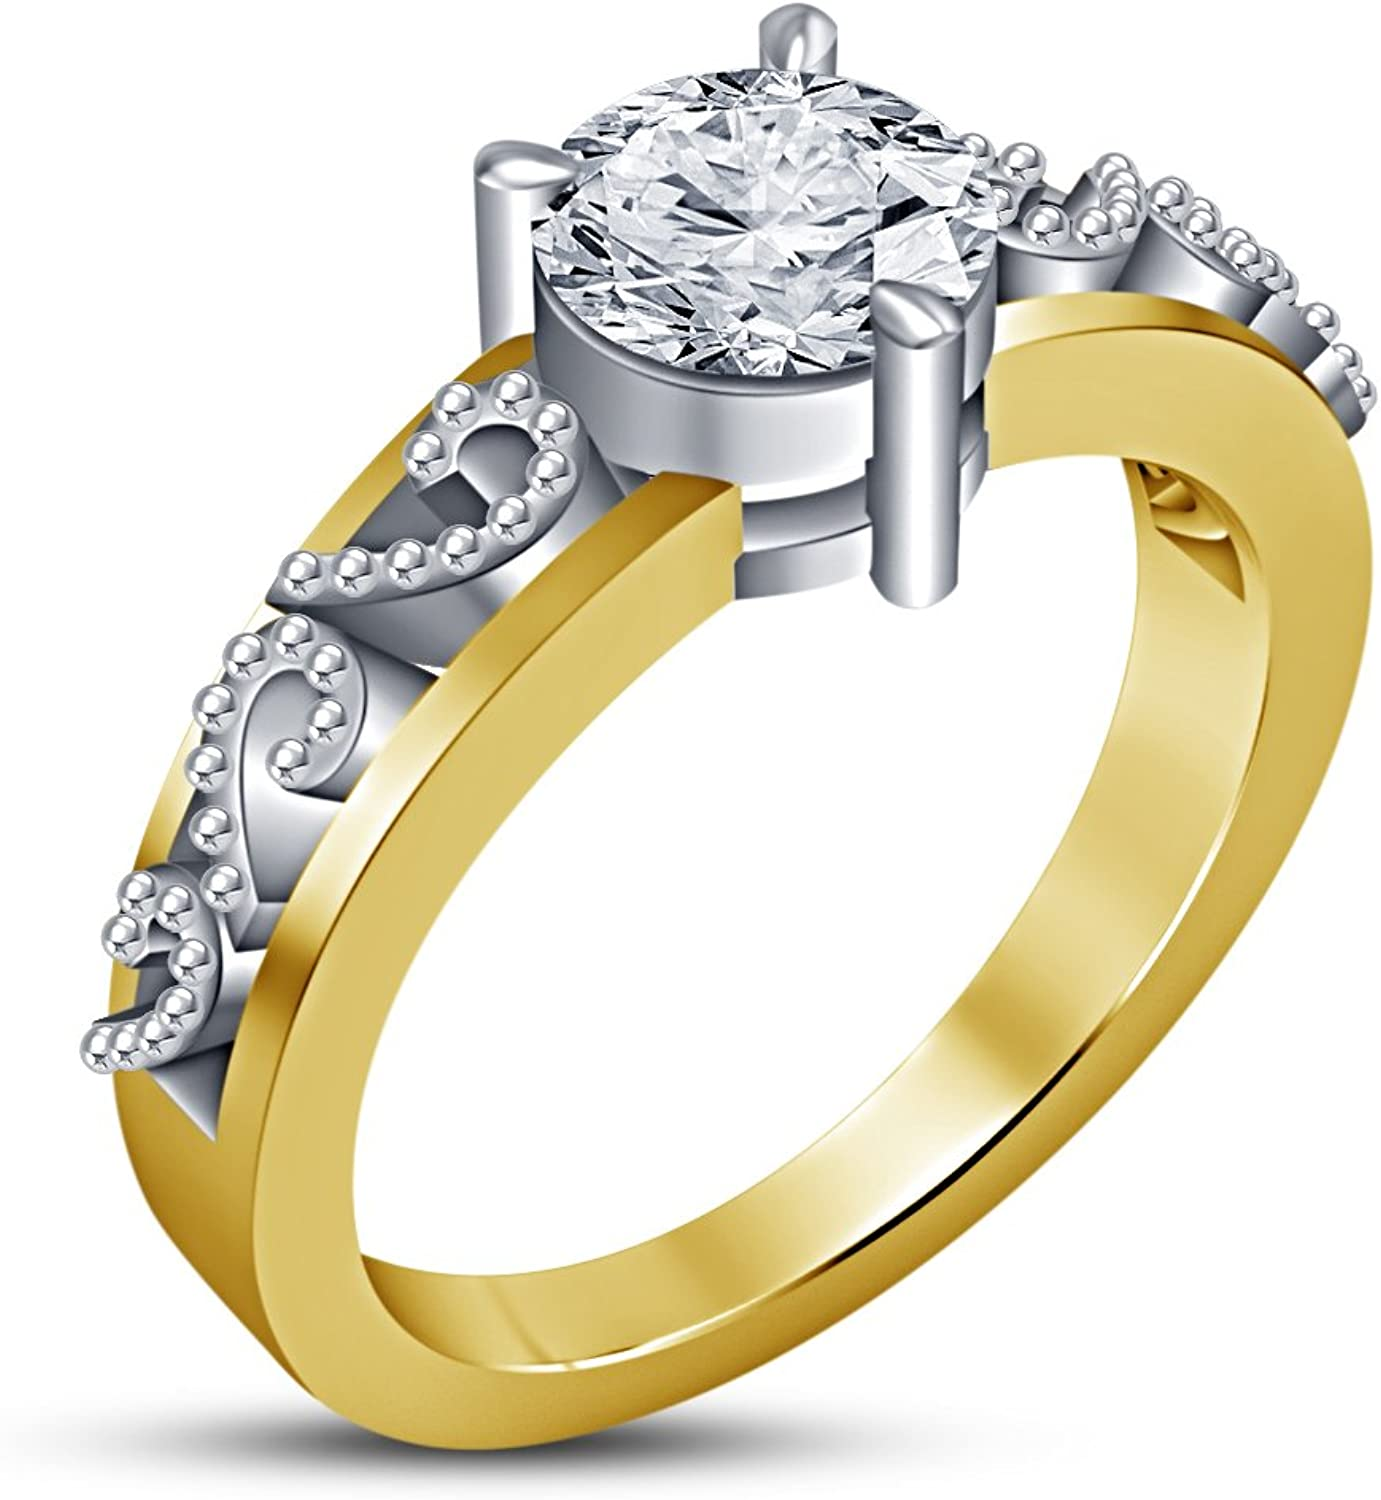 Vorra Fashion Ladies Solitaire Anniversary Ring With Brilliant Round Cut White Cubic Zirconia Jewelry